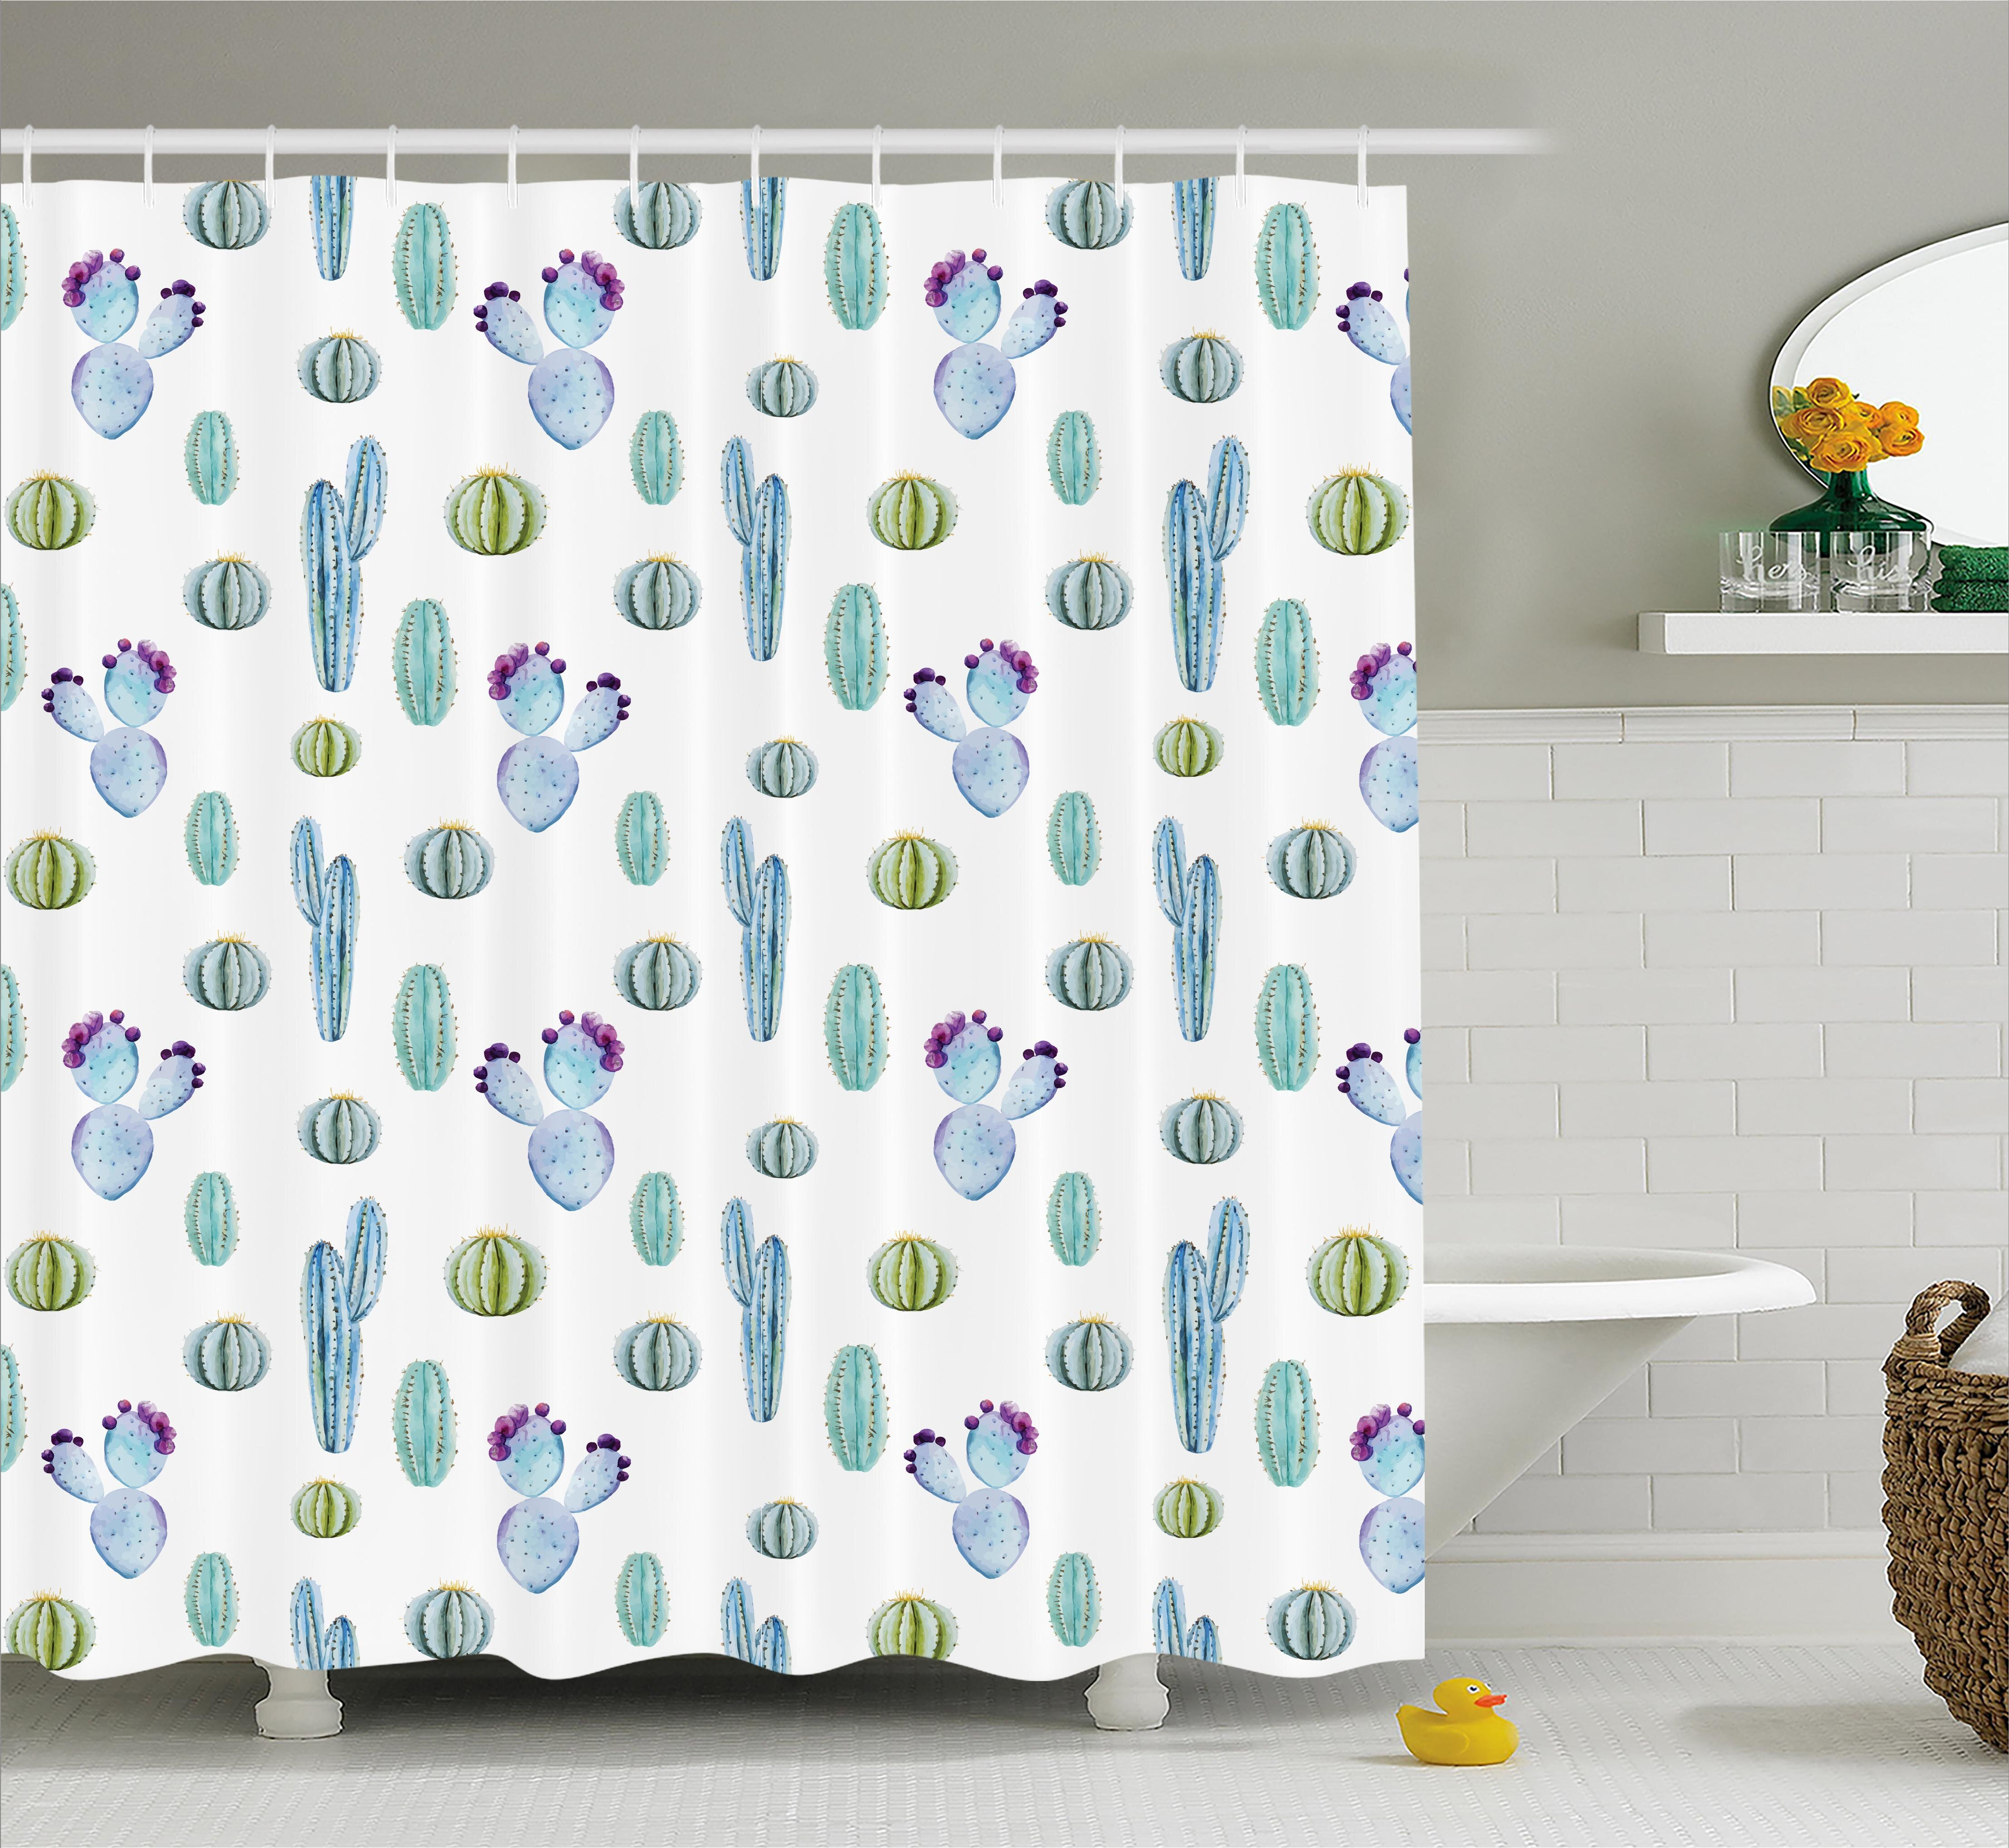 Zelida Blue Botanic Desert Flowers With Spikes Pattern Types Of Desert  Cactus Art Decor Single Shower Curtain